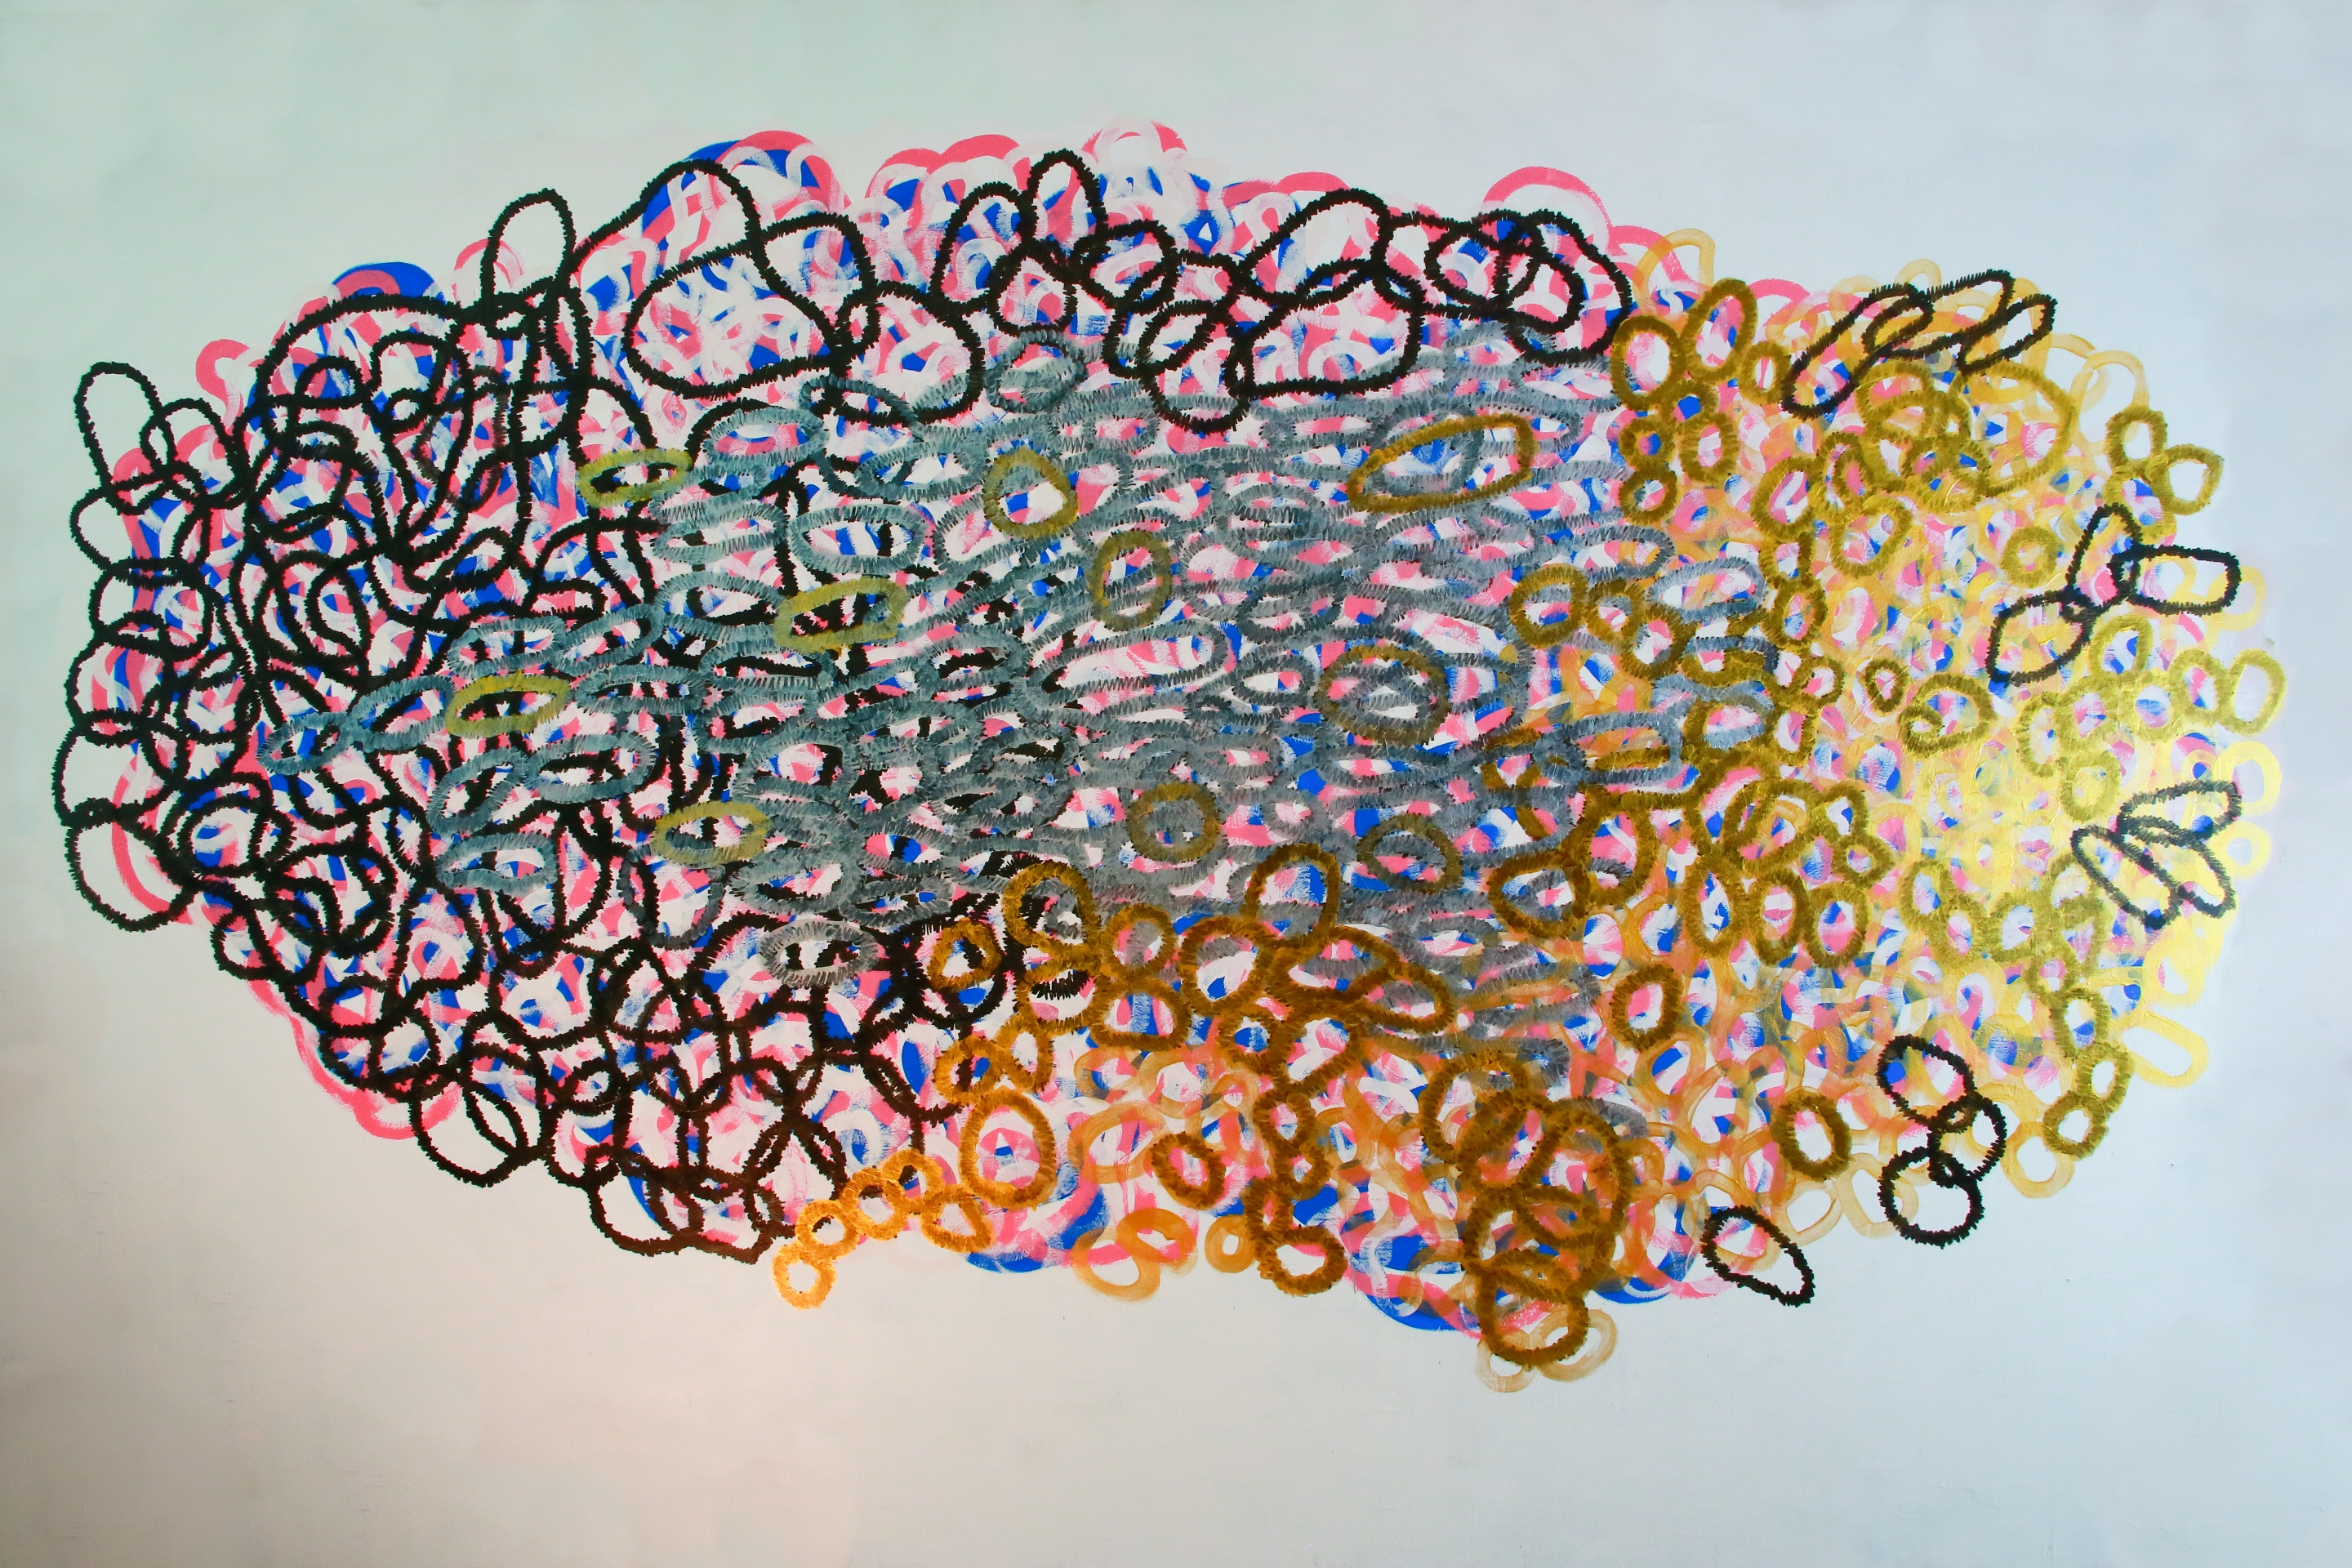 Lyn Horton, The Naga, 2014, wall drawing, 70 inches h x 128 inches w, house paint & pigmented pen WEB.jpg